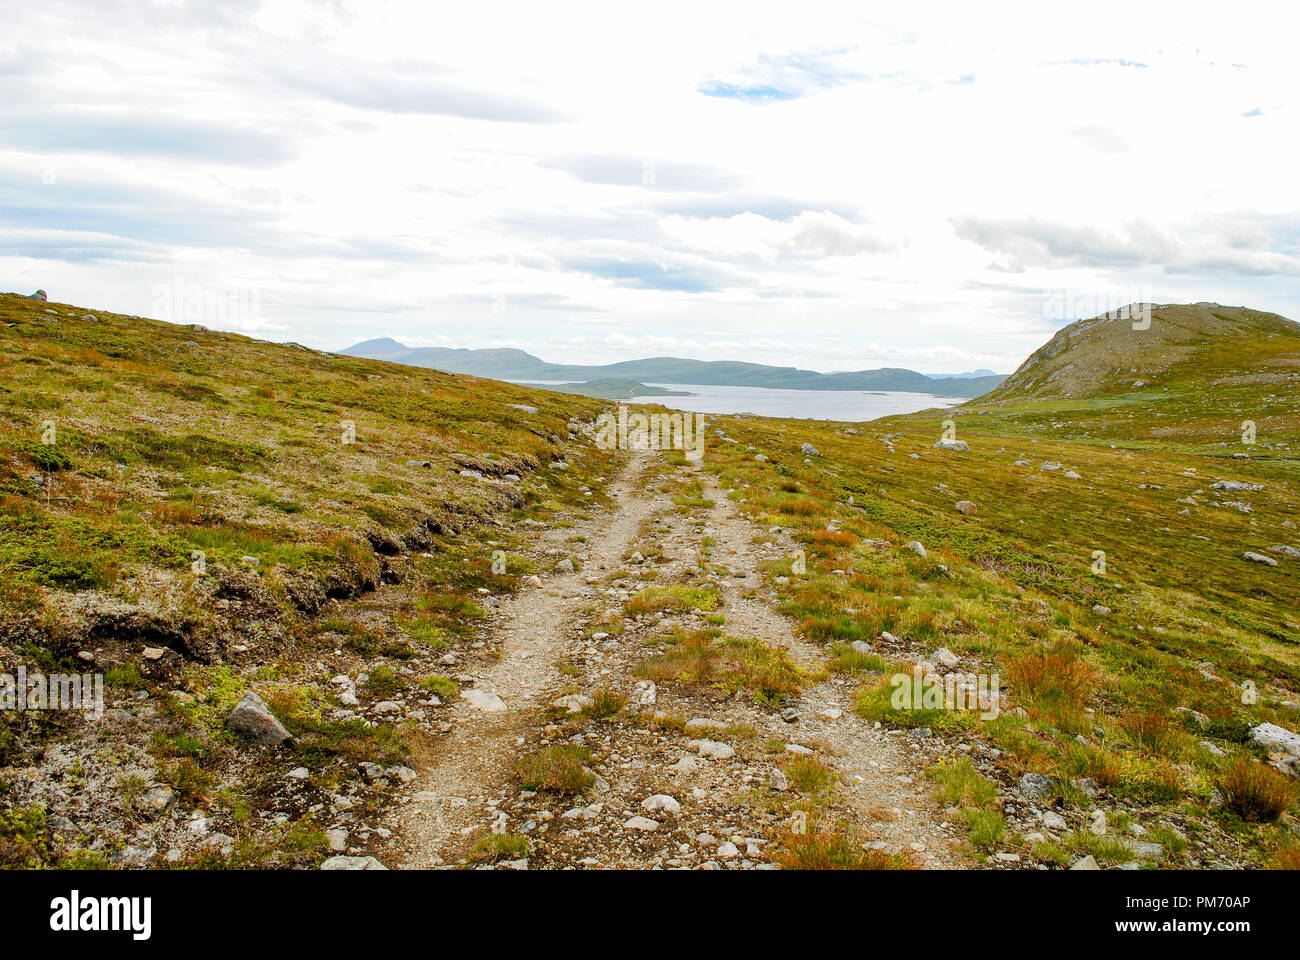 Mountain road on Valdresflya, Norway, with lake Vinstre in the background - Stock Image